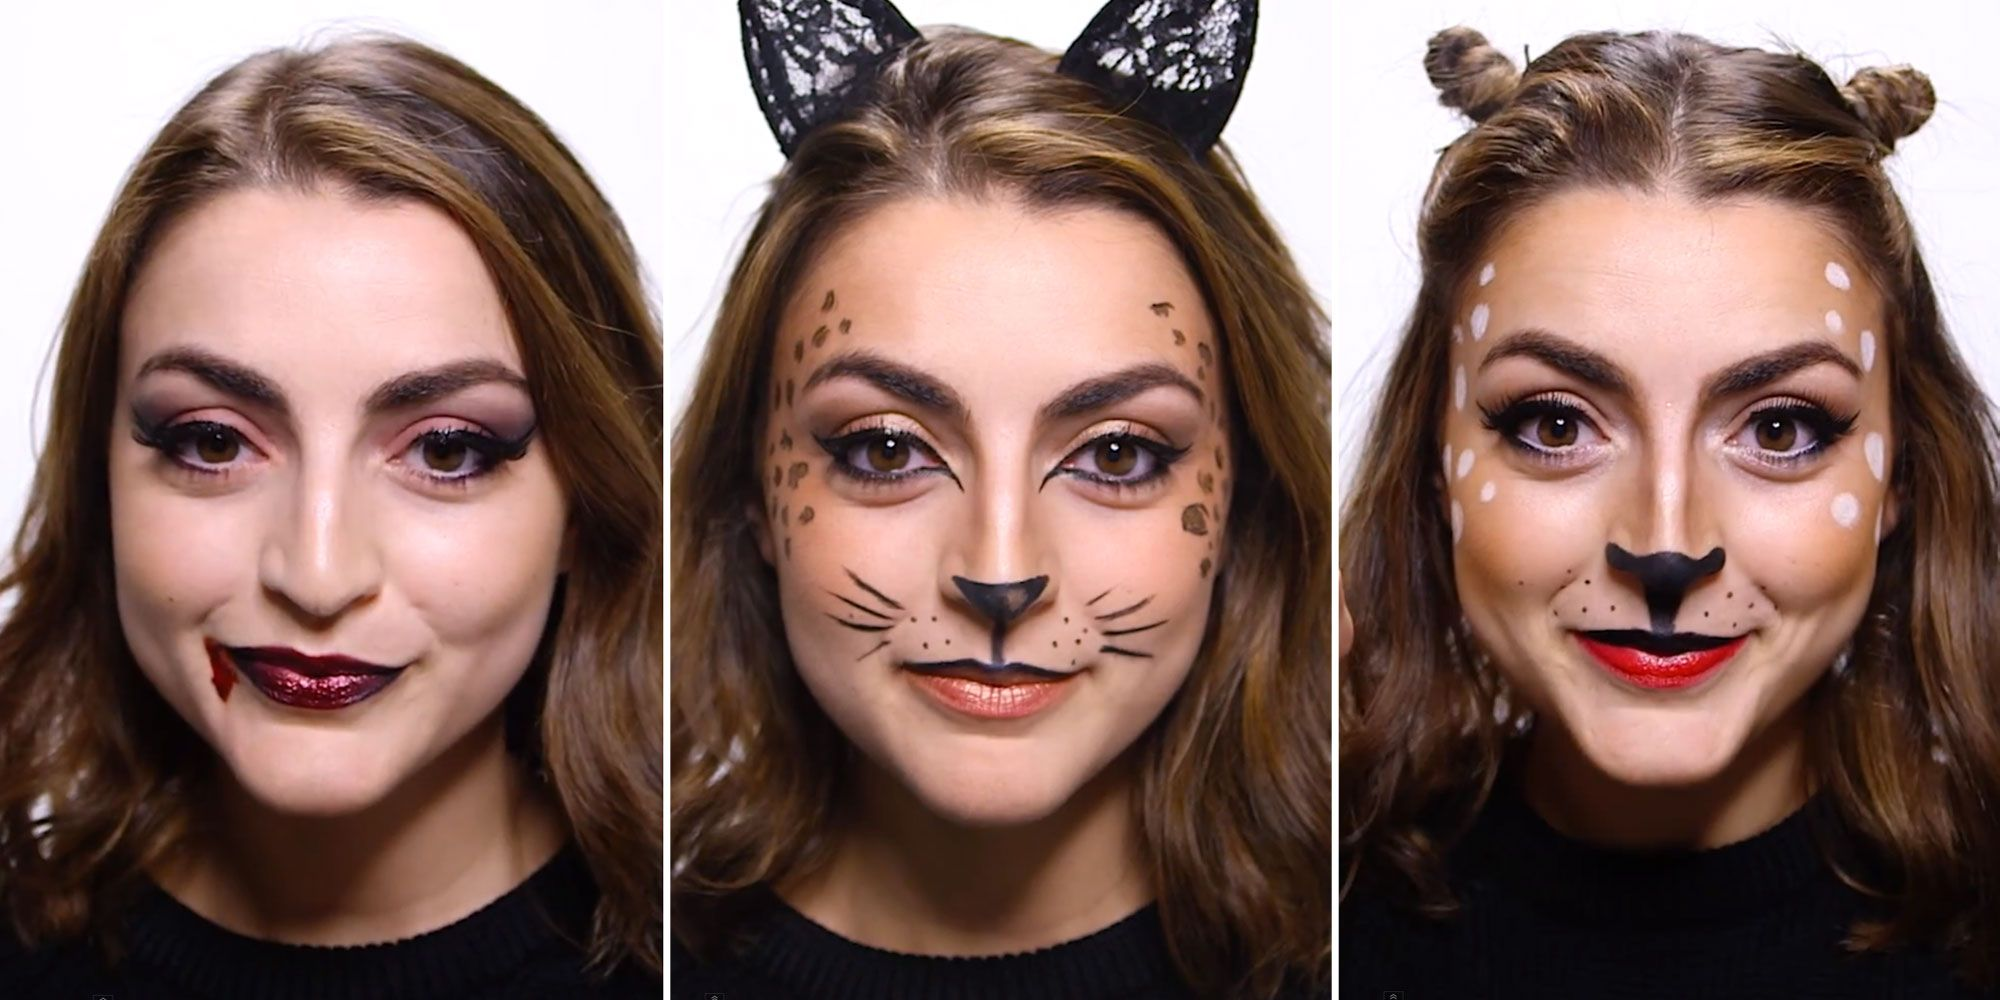 3 Easy Halloween Makeup Videos - Makeup Ideas for Last-Minute ...